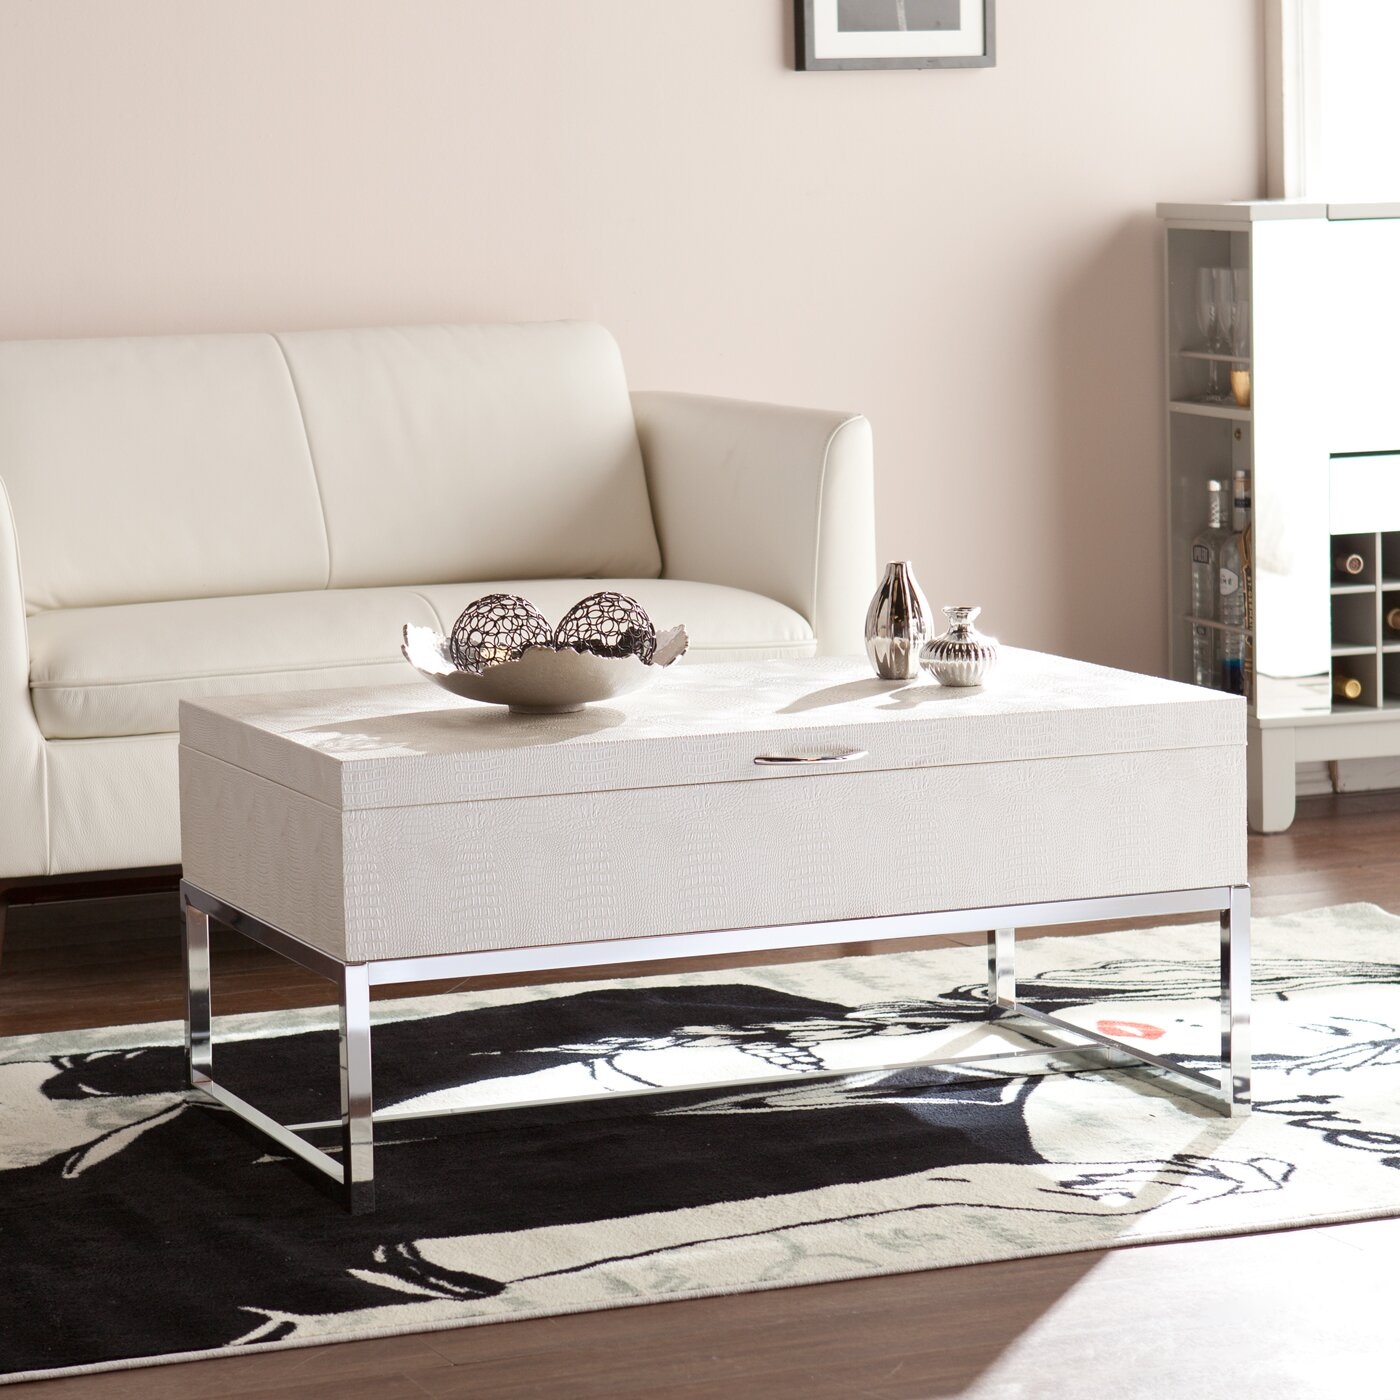 Tree Trunk Coffee Table Melbourne: House Of Hampton Wintershoven Coffee Table & Reviews